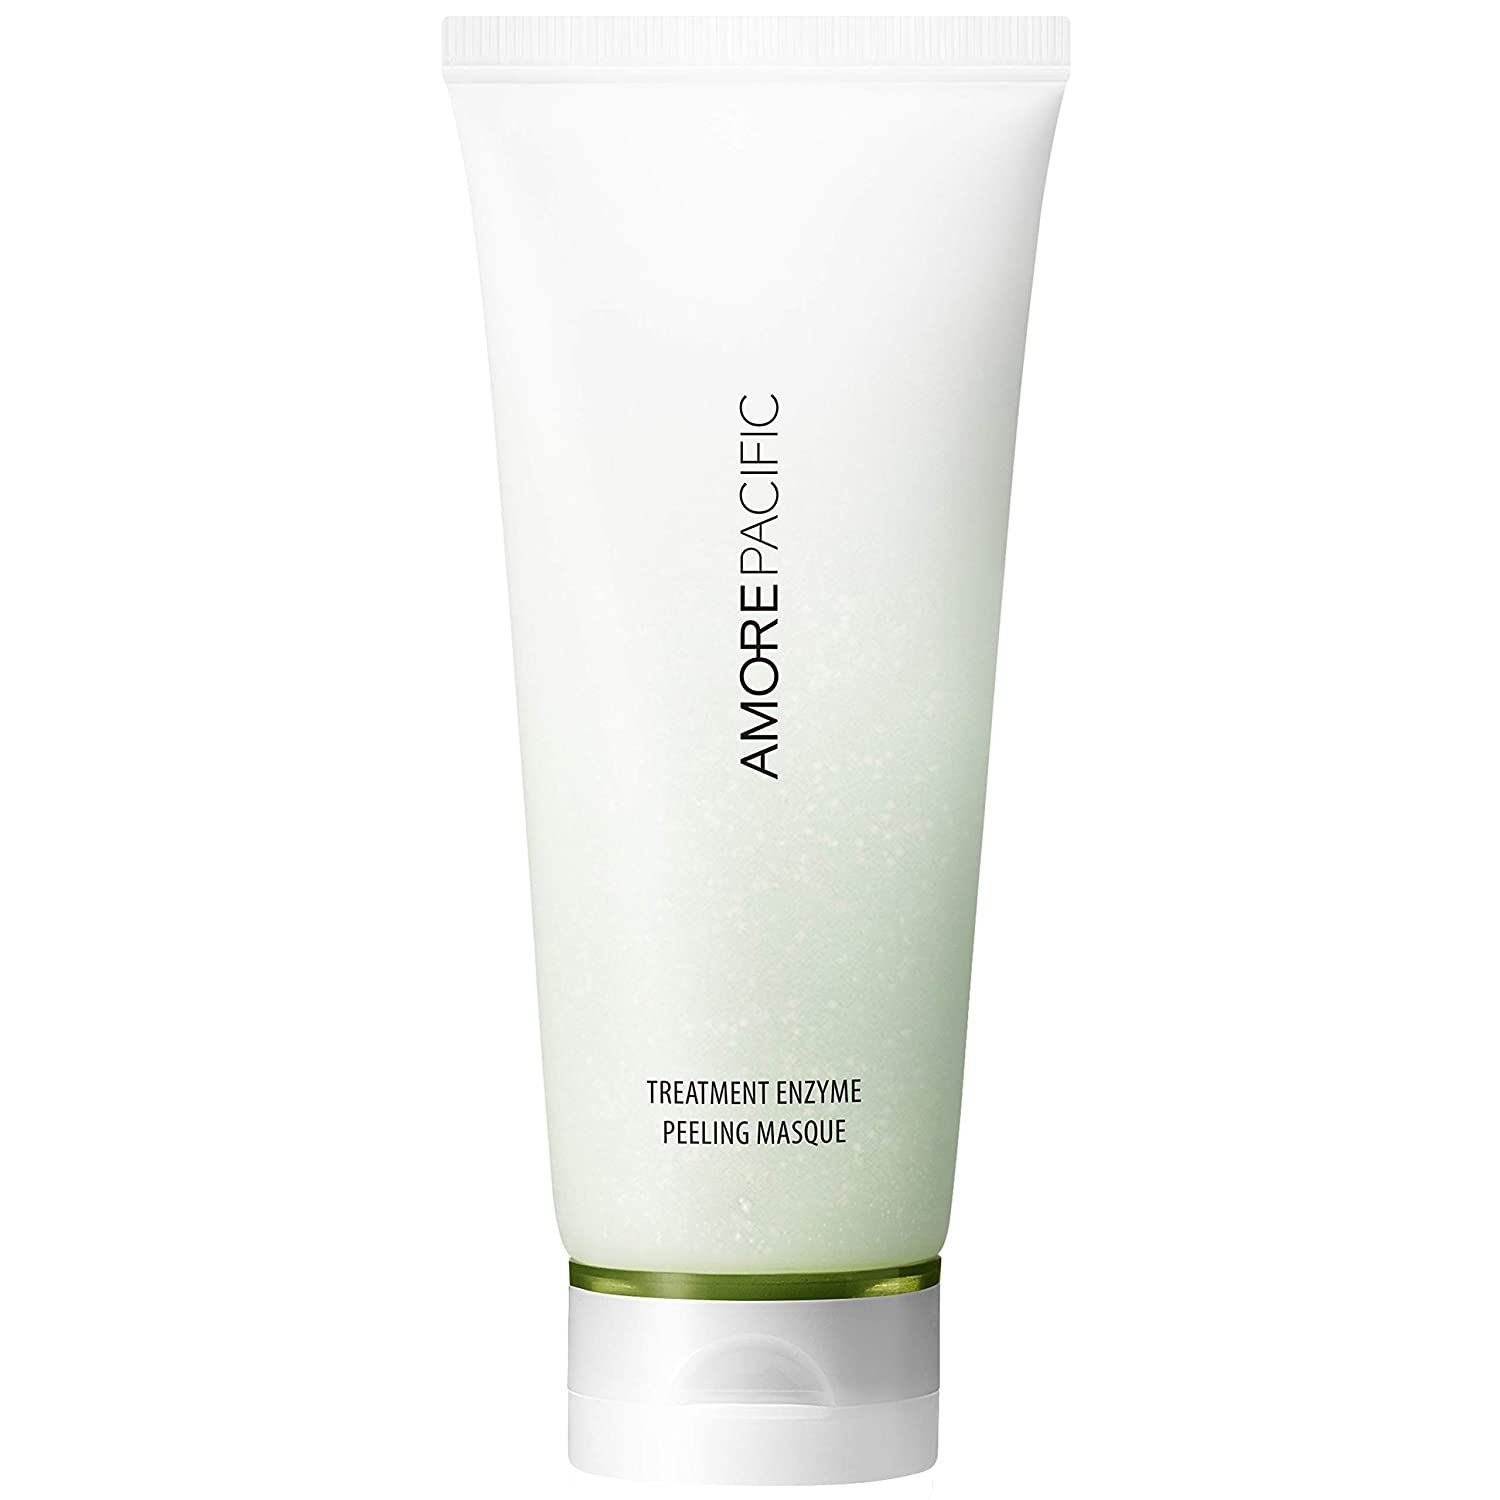 AMOREPACIFIC Treatment Enzyme Peeling Masque Gel to Cream Facial Mask, 2.7 Fl Oz